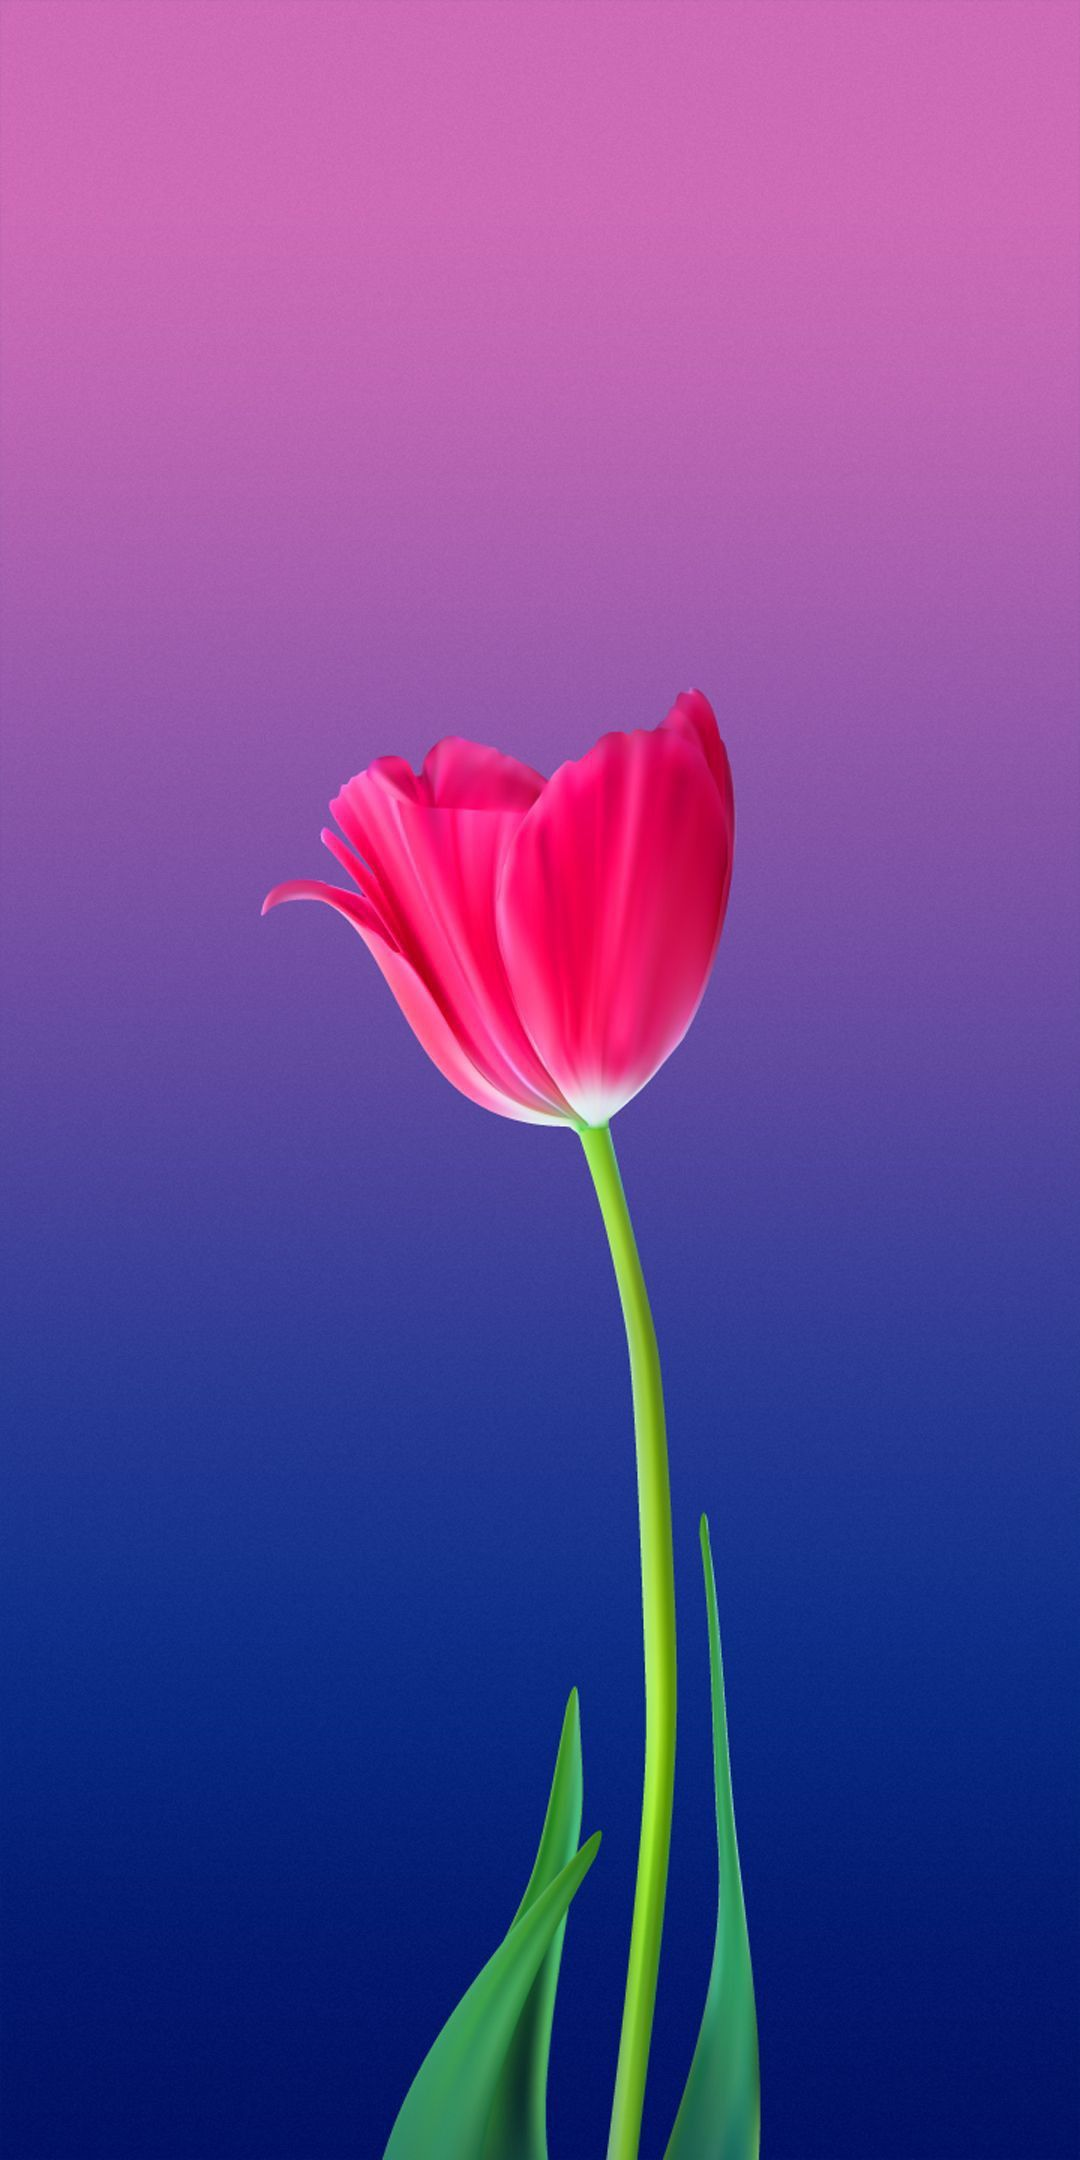 Pin By Rahul On Single Flower Flower Phone Wallpaper Beautiful Flowers Wallpapers Wallpaper Nature Flowers Ideas for iphone full hd flower nature